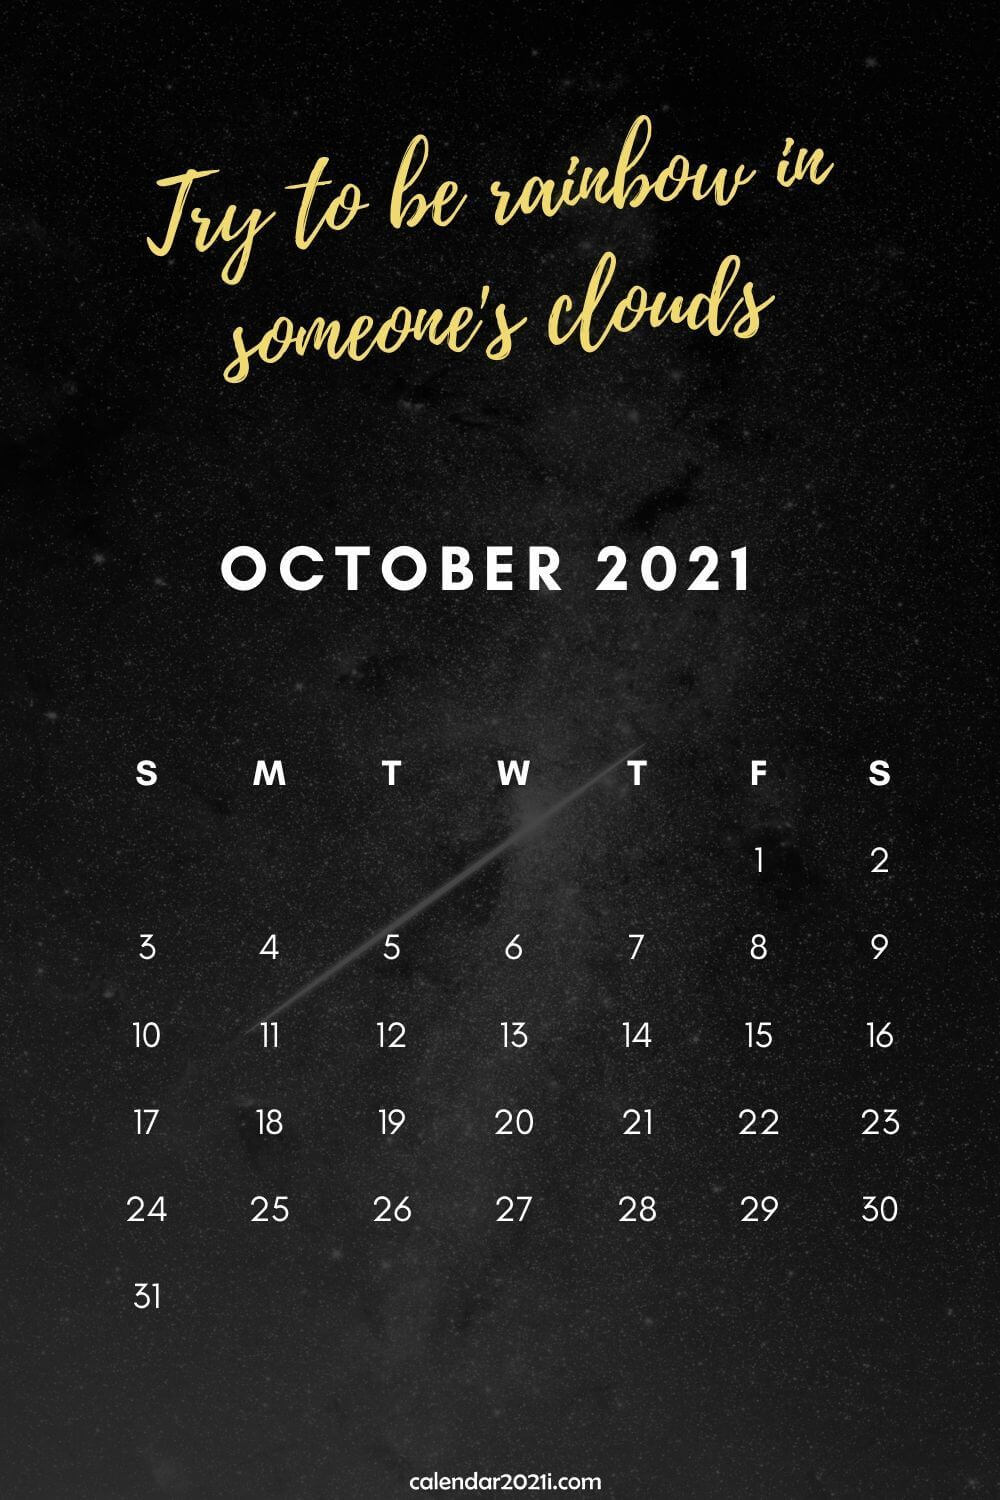 October 2021 Calendar Wallpaper